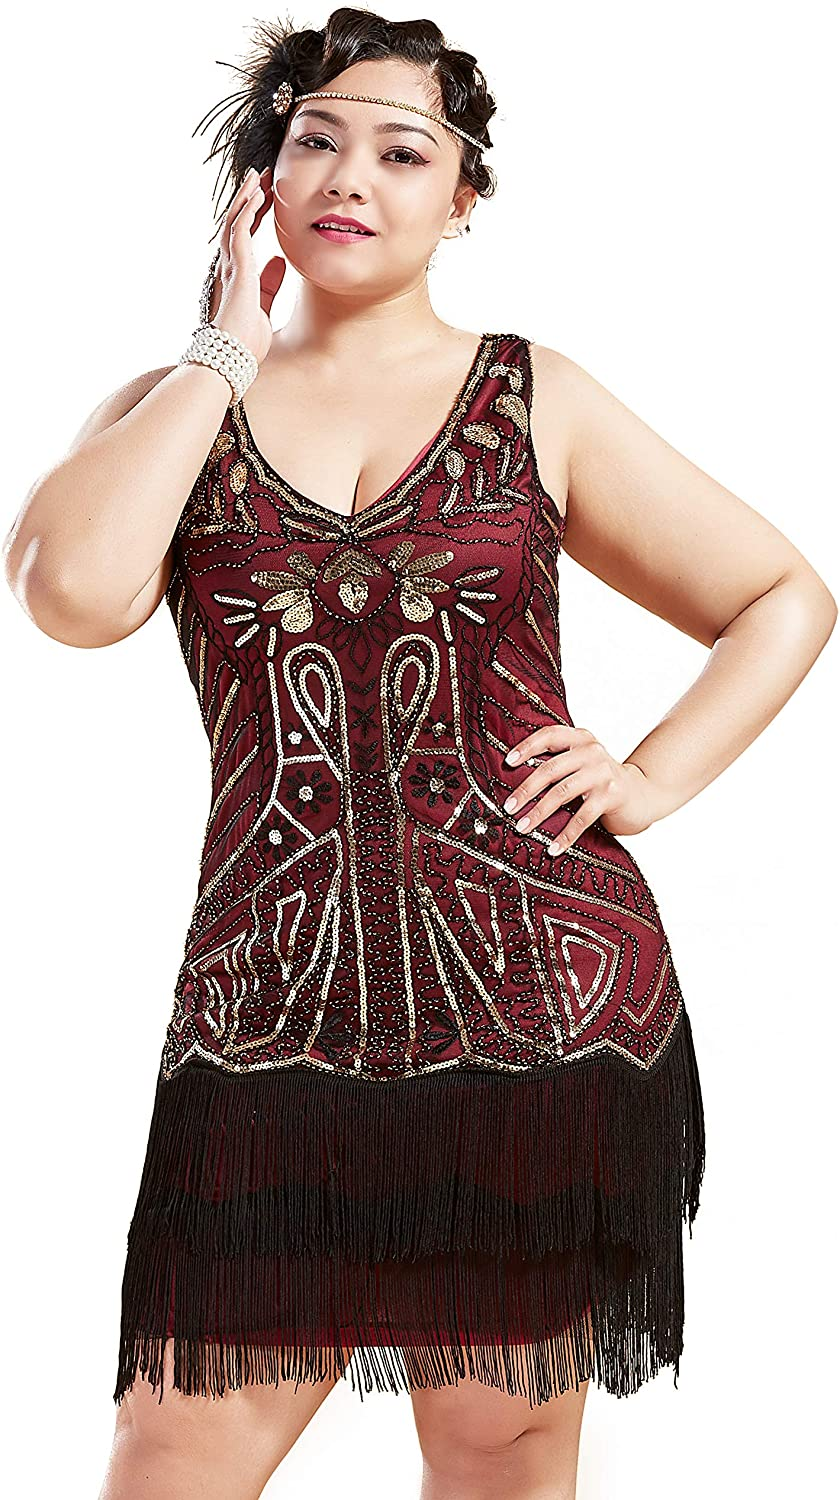 1920s Plus Size Flapper Dresses, Gatsby Dresses, Flapper Costumes BABEYOND Womens Plus Size Flapper Dresses 1920s V Neck Beaded Fringed Great Gatsby Dress $43.99 AT vintagedancer.com